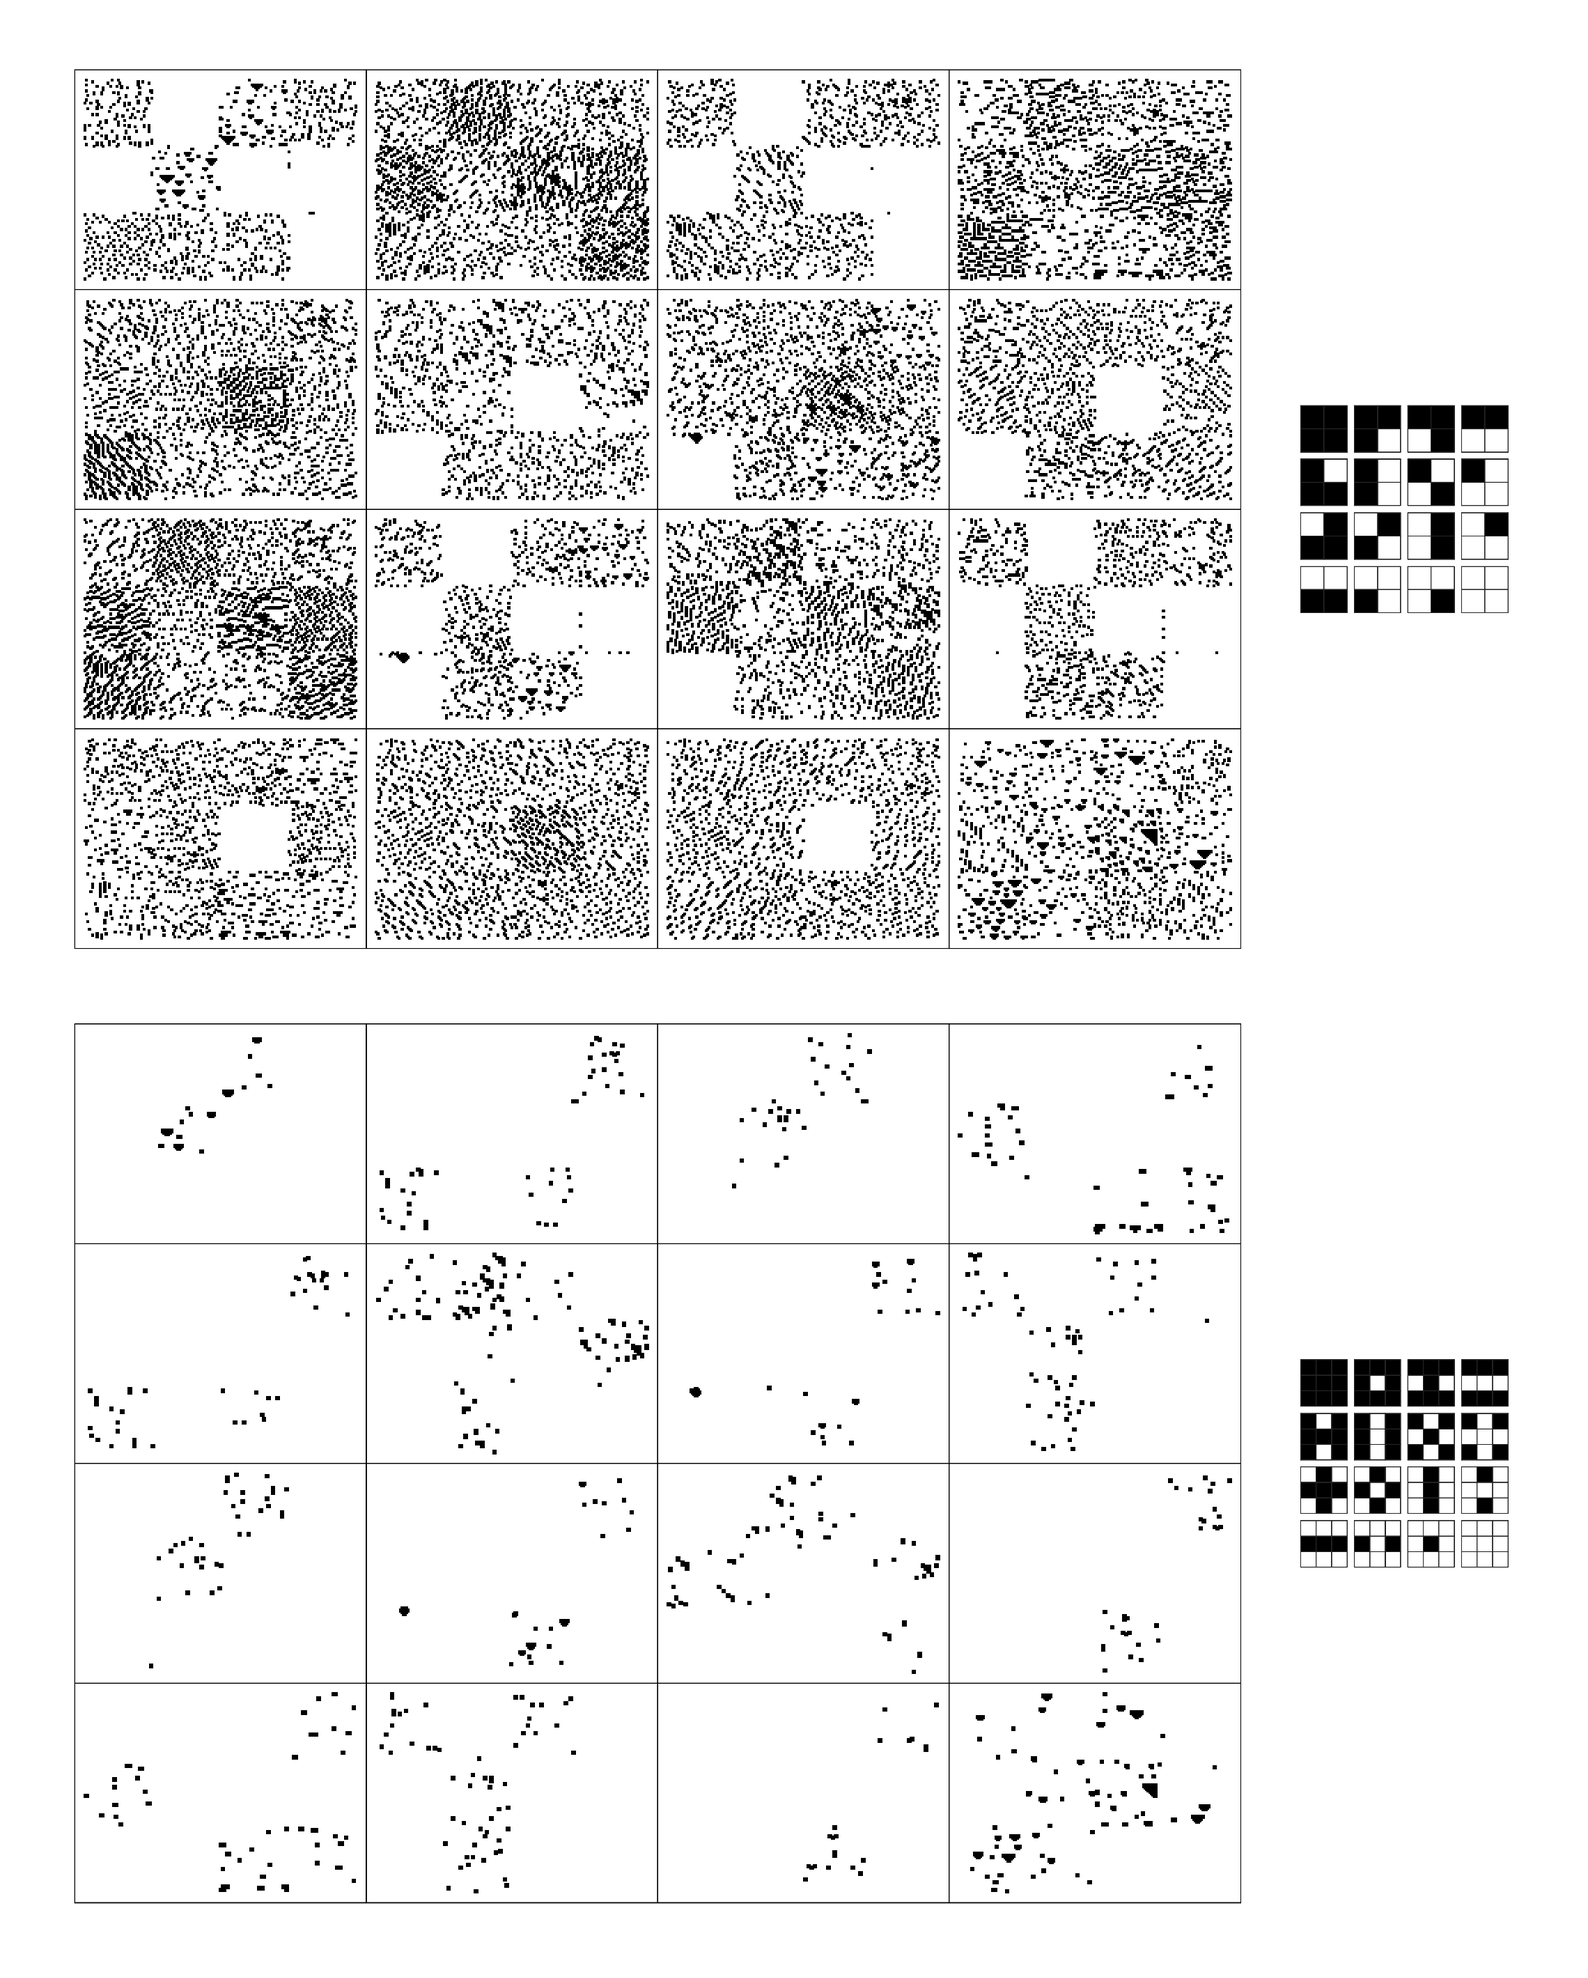 Responses to cells sensitive to all 16 possible 2×2 blocks